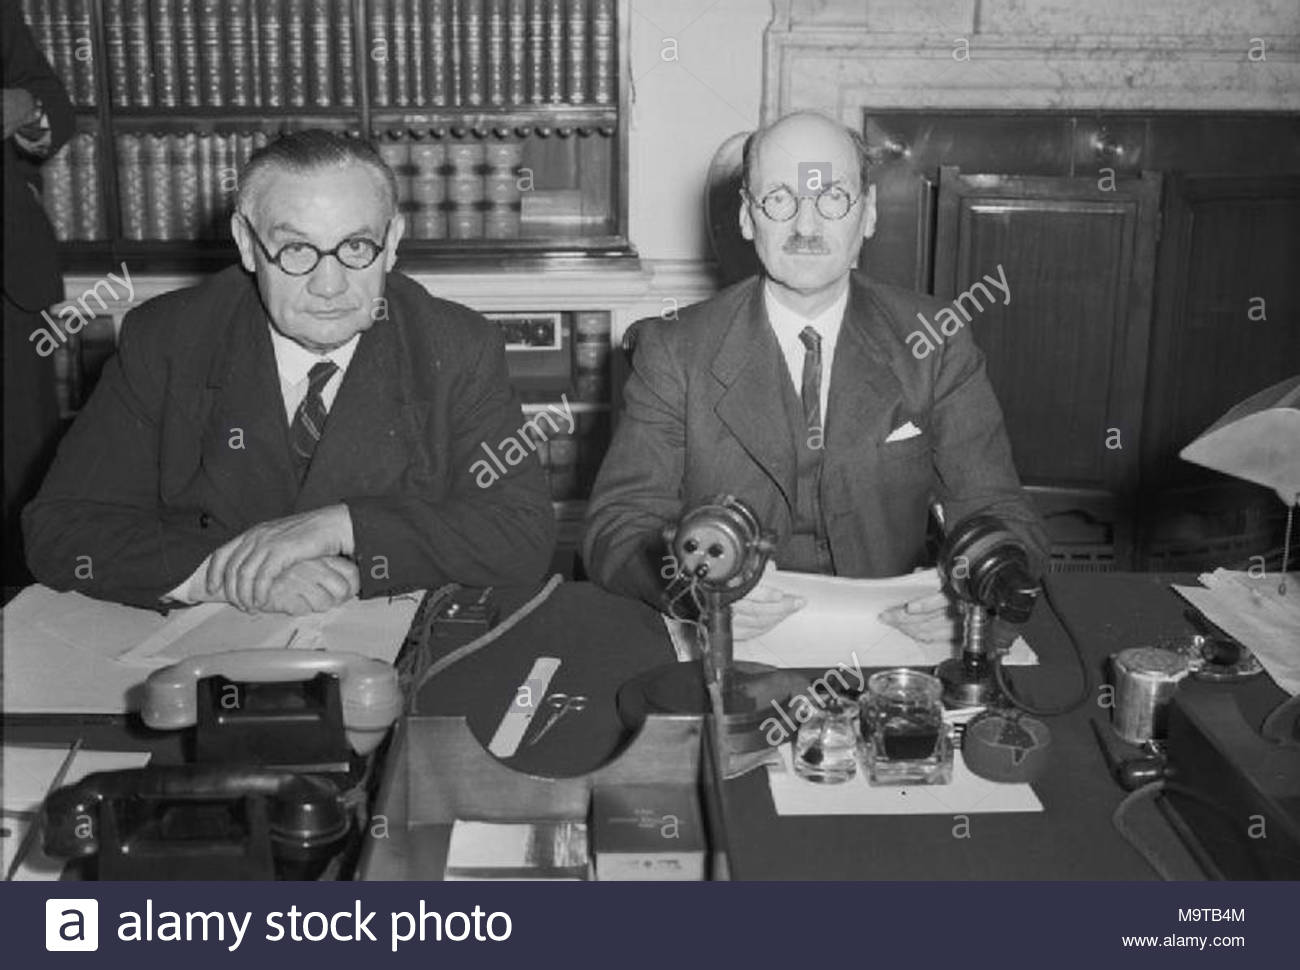 . Prime Minister Clement Attlee (right) and Foreign Secretary Ernest Bevin photographed at 10 Downing Street at midnight on 14 August 1945. They had just announced, in a speech broadcast to Britain and the Empire, the news of the Japanese surrender. - Stock Image